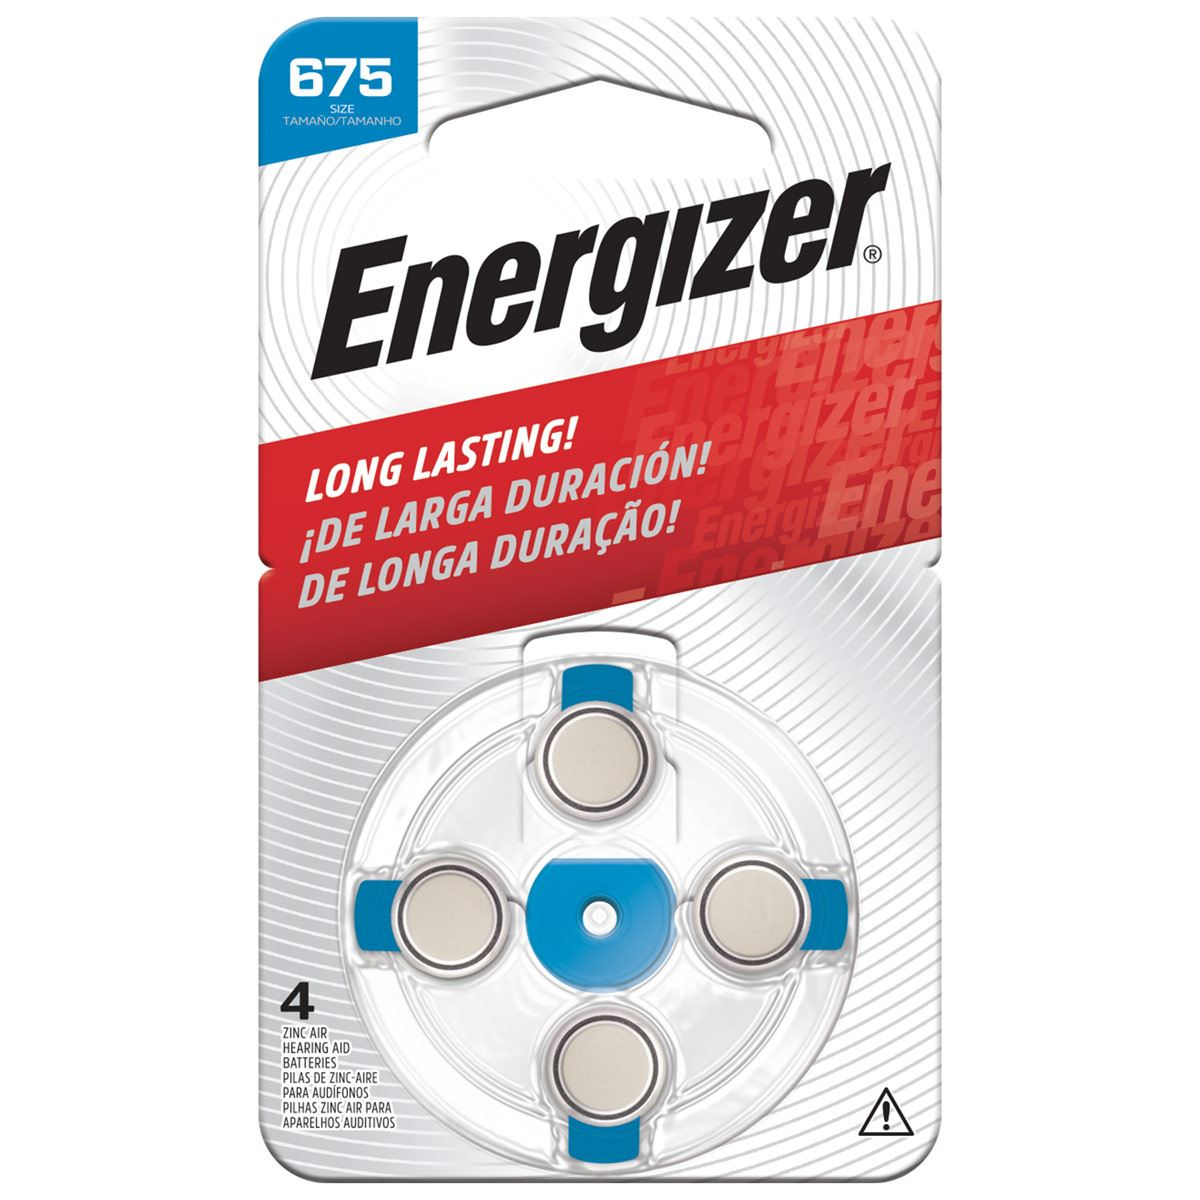 Pila Energizer Especializada Auditiva Ha 675 C/4